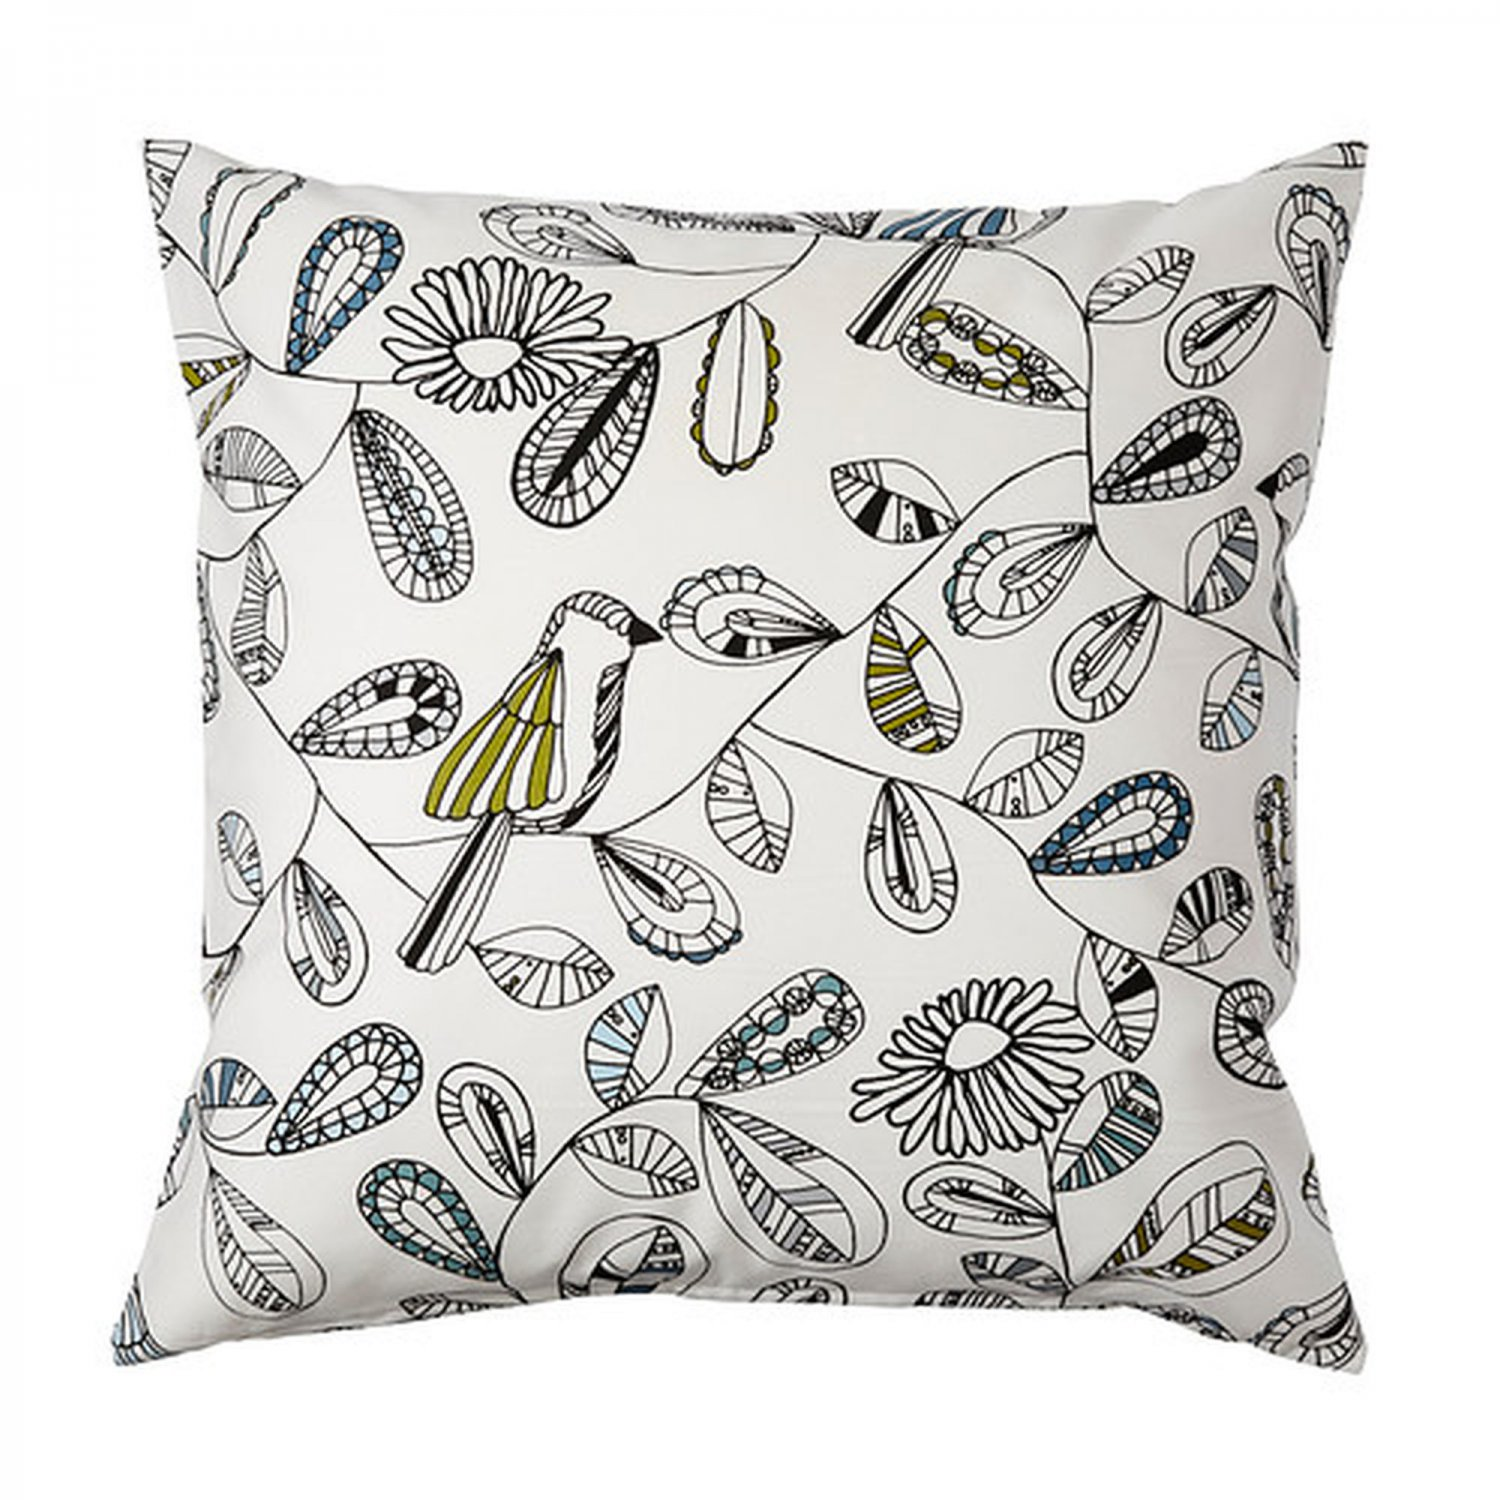 ikea snabbvinge cushion cover pillow sham birds flowers leaves 20 x 20. Black Bedroom Furniture Sets. Home Design Ideas